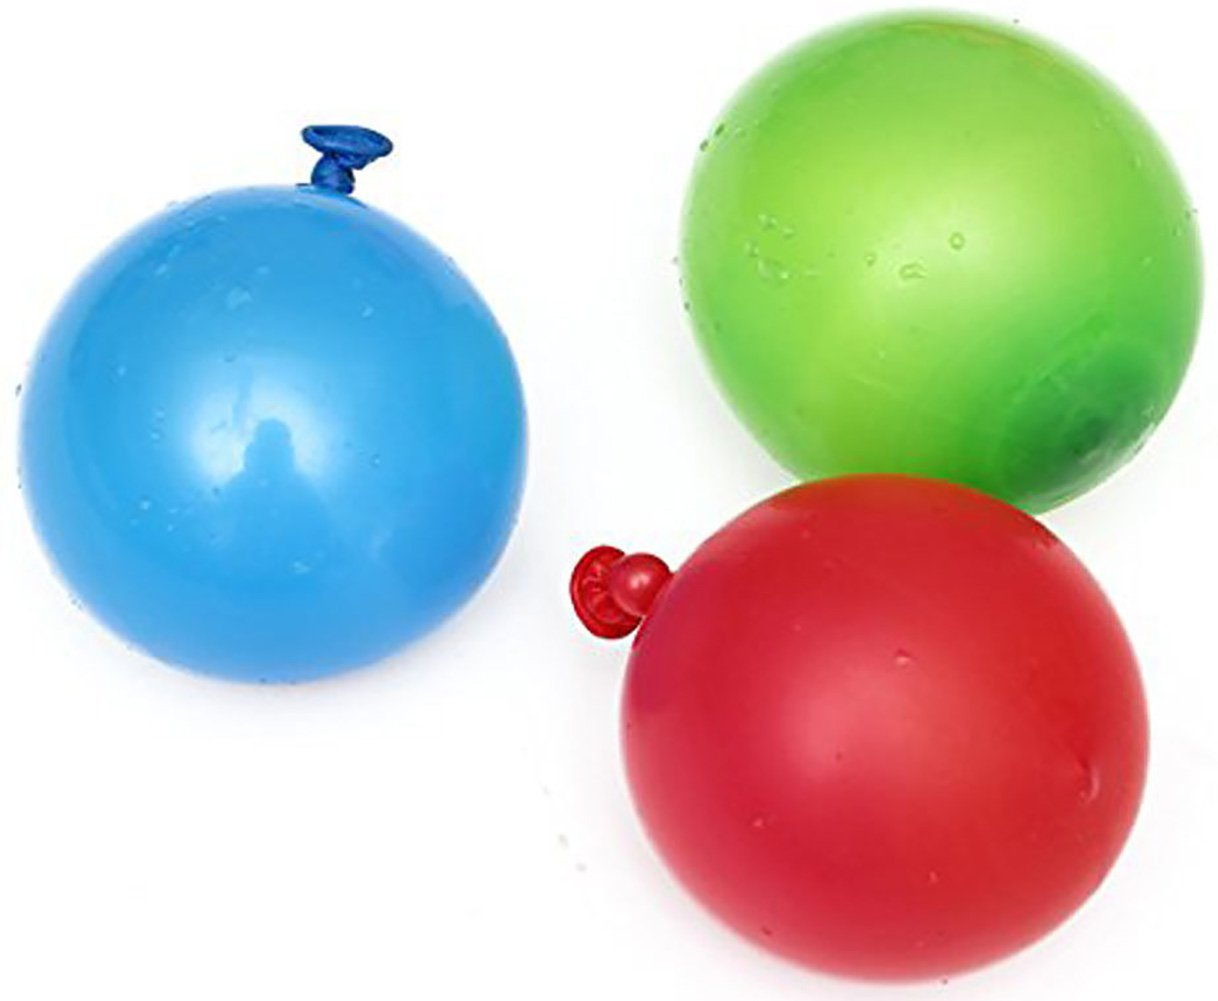 """Cool & Fun {120 Count Pack} of 3"""" - 6"""" Inch """"Standard Size"""" Water Balloon Bomb Grenades Made of Latex w/ Non-Staining Dye Filled Burst Design {Red, Blue & Green} w/ Screw On Hose Attachment"""